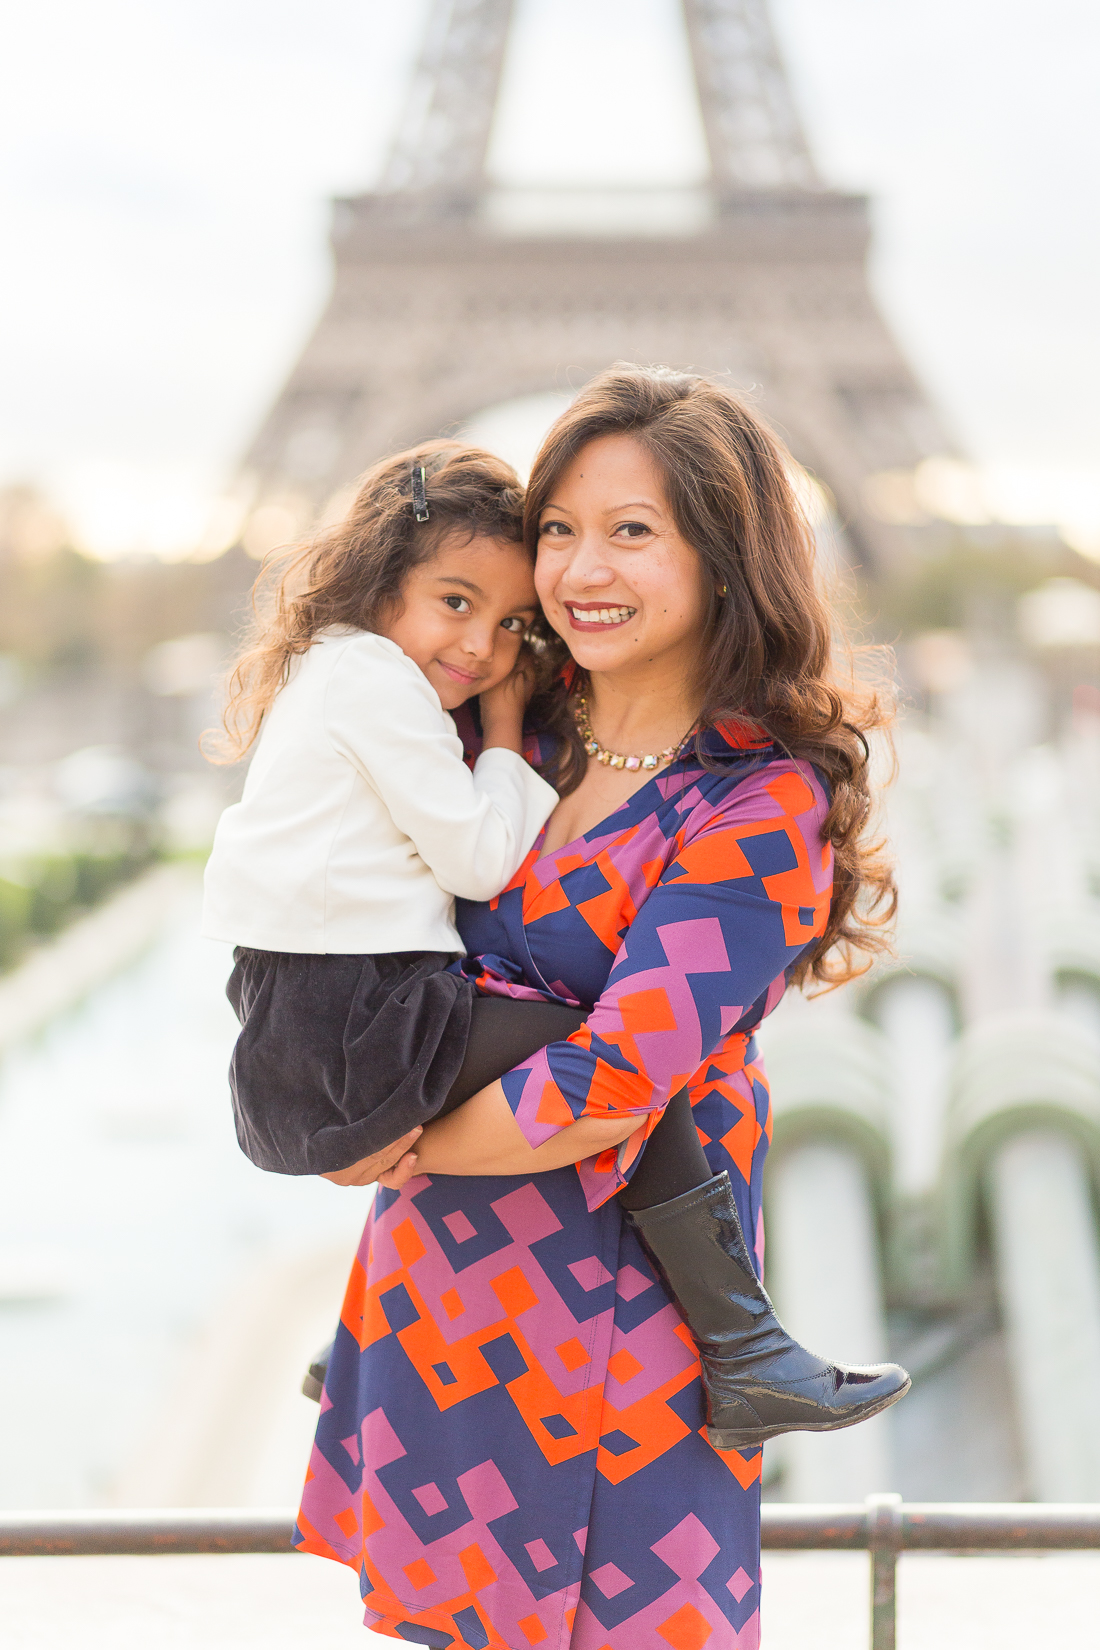 spring-fall-family-paris-eiffel-tower-photo-session-outfit-inspiratn-2